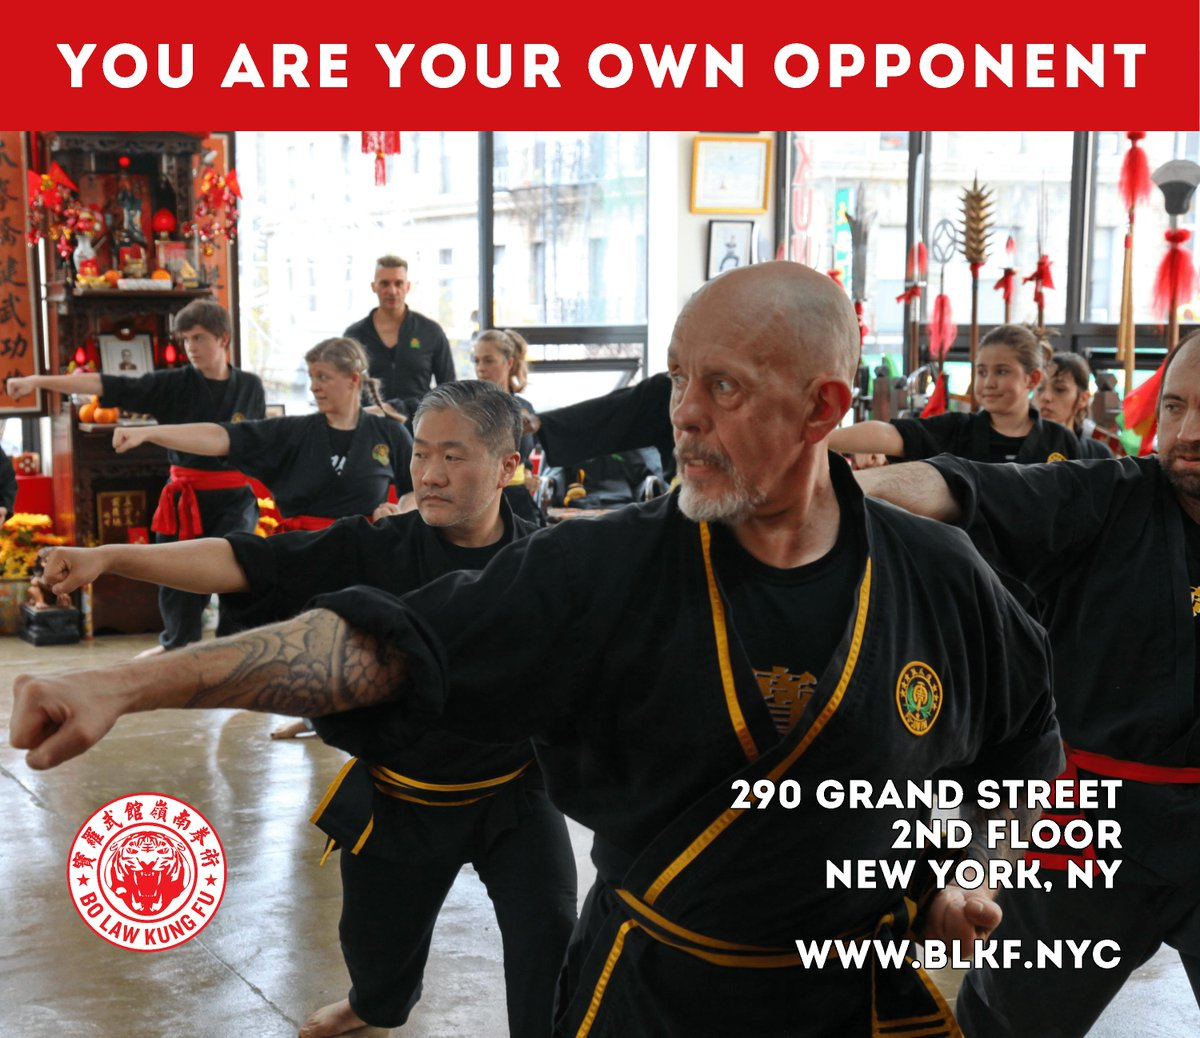 Bo Law Kung Fu On Twitter You Are Your Own Opponent